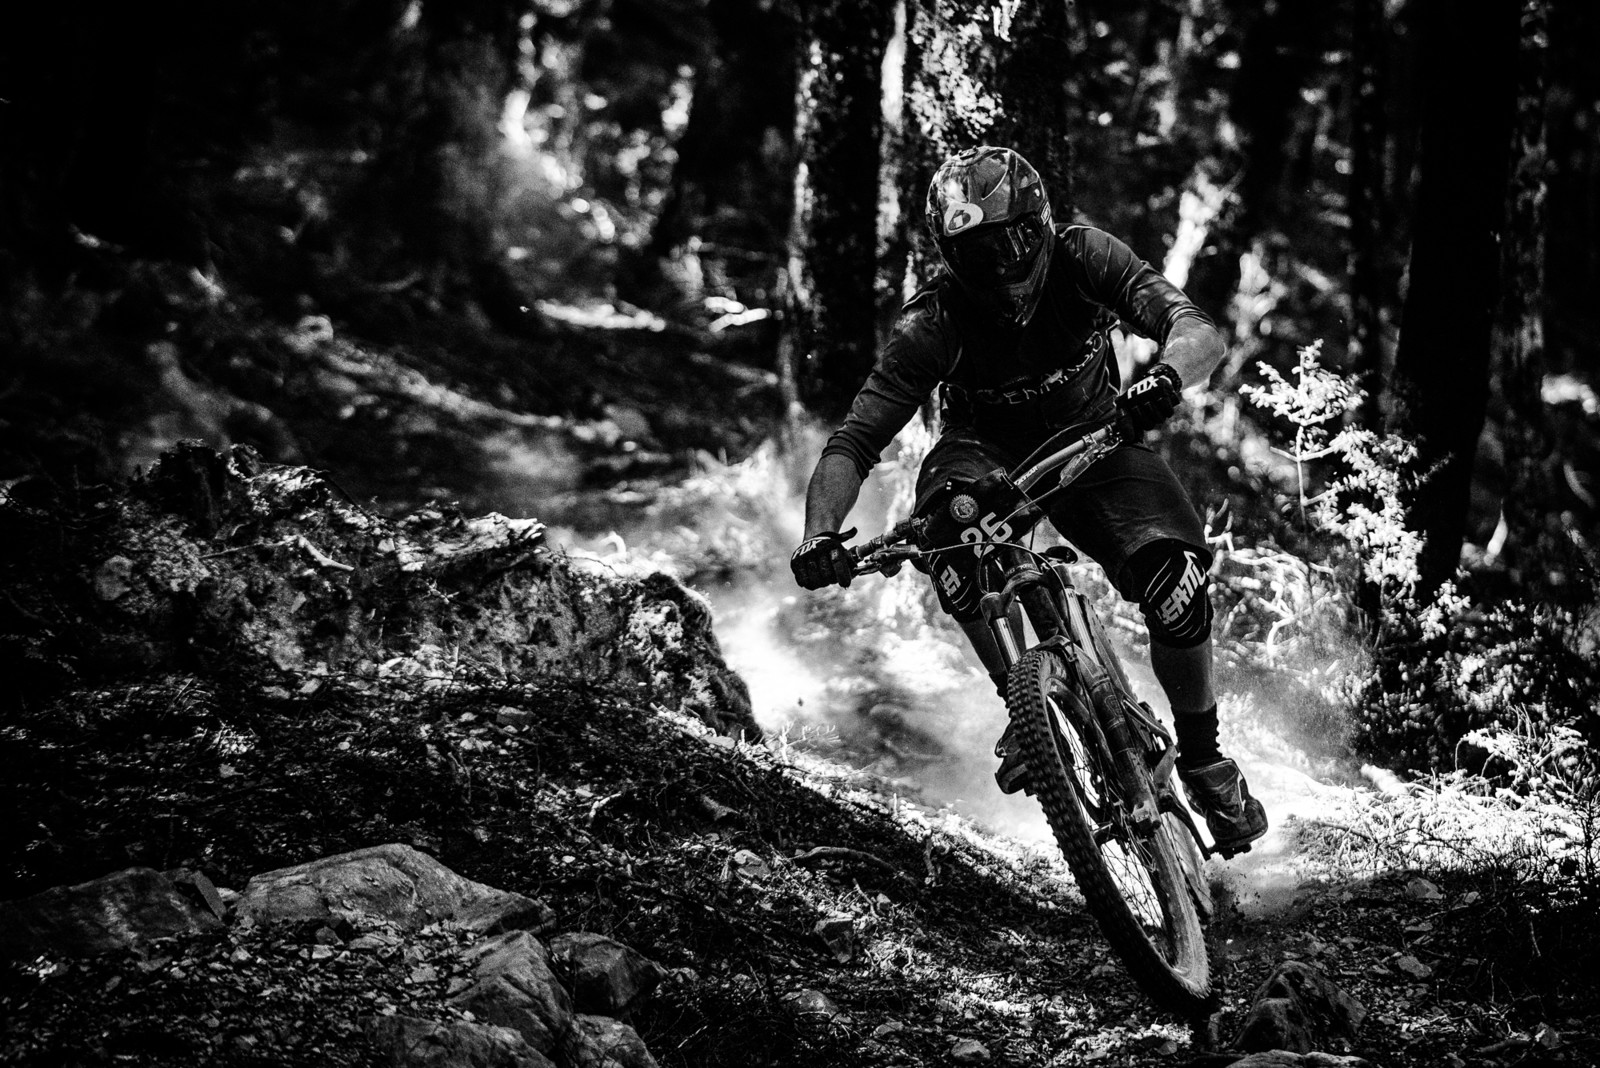 Andre Jaworski - 2019 Dodzy Memorial Enduro - Mountain Biking Pictures - Vital MTB